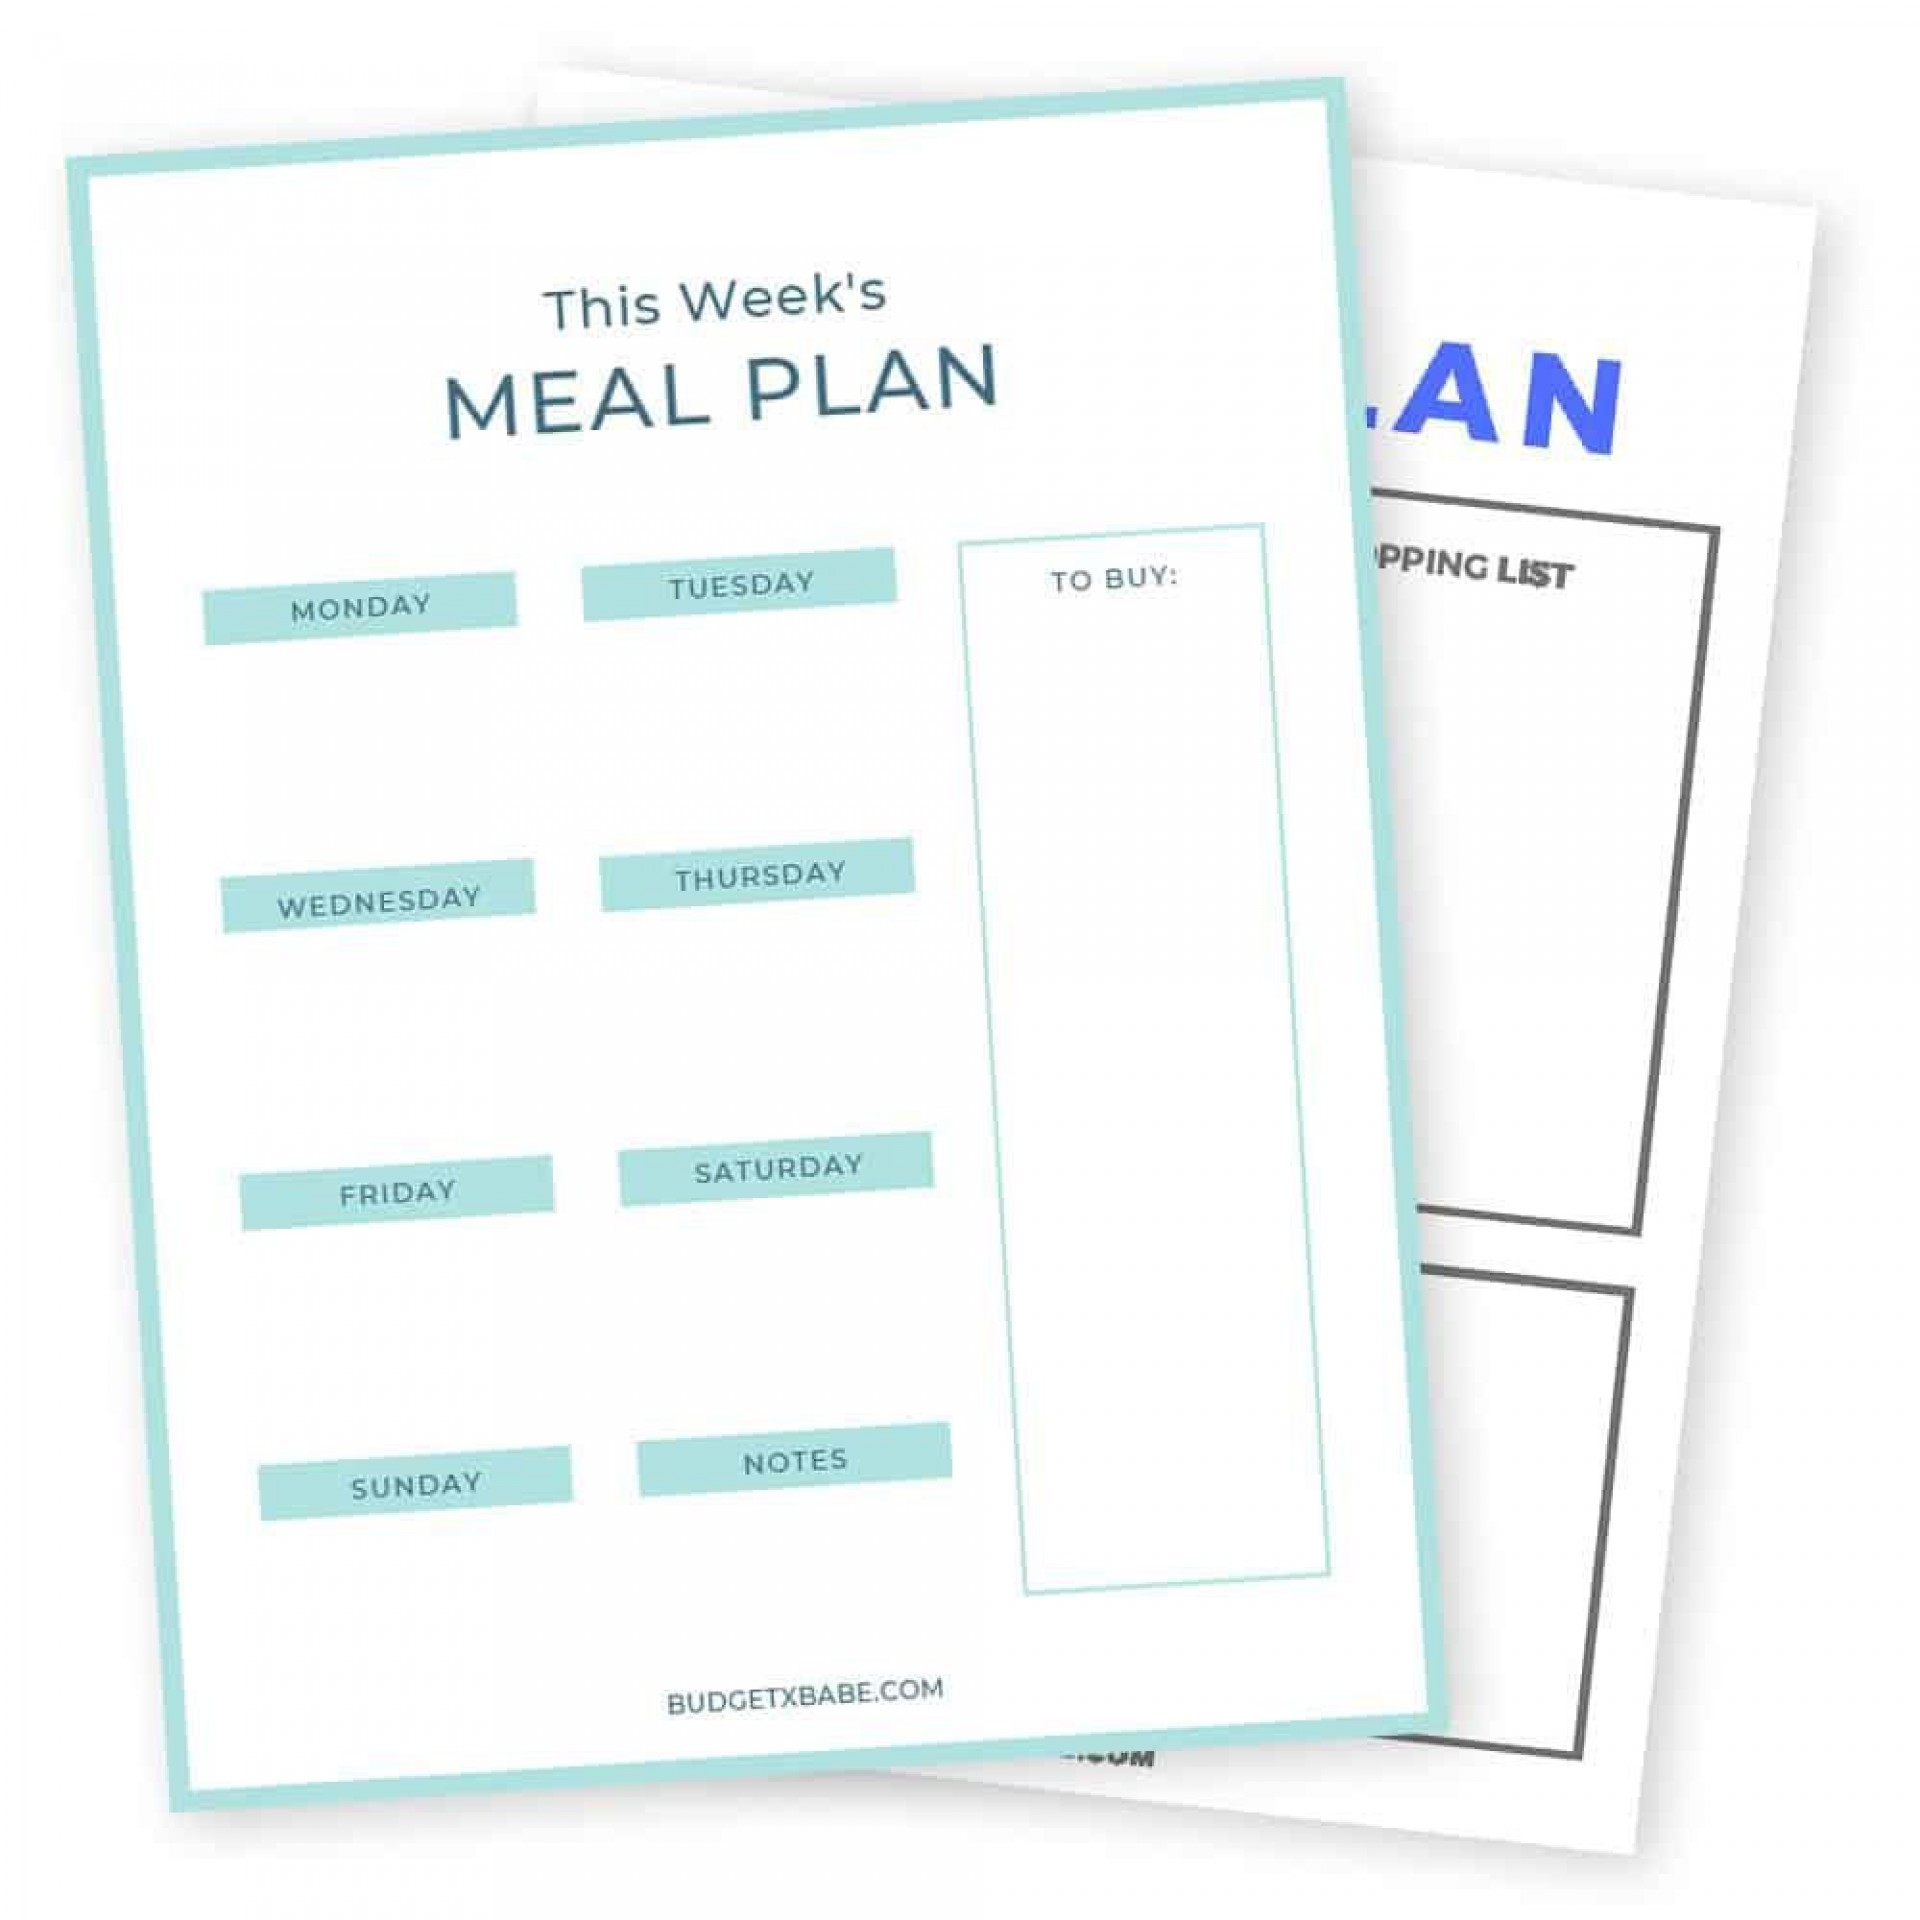 009 Incredible Free Meal Planner Template Pdf Sample  Weekly With Grocery List Monthly1920